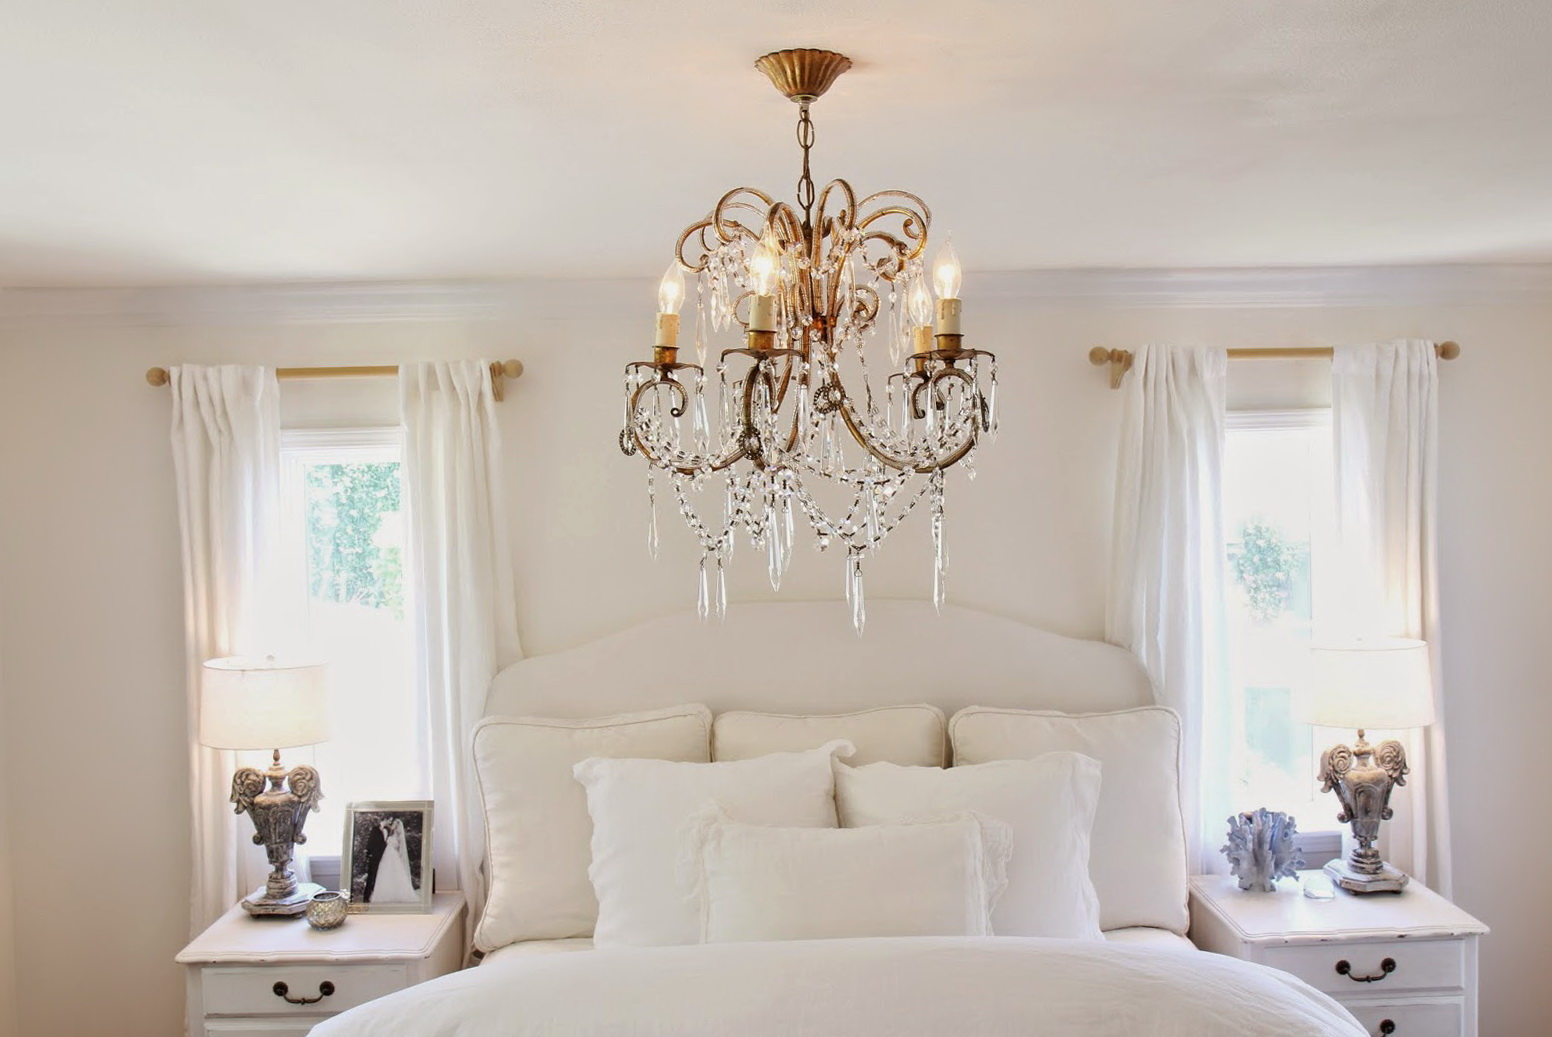 Chandelier In Master Bedroom Home Design Ideas